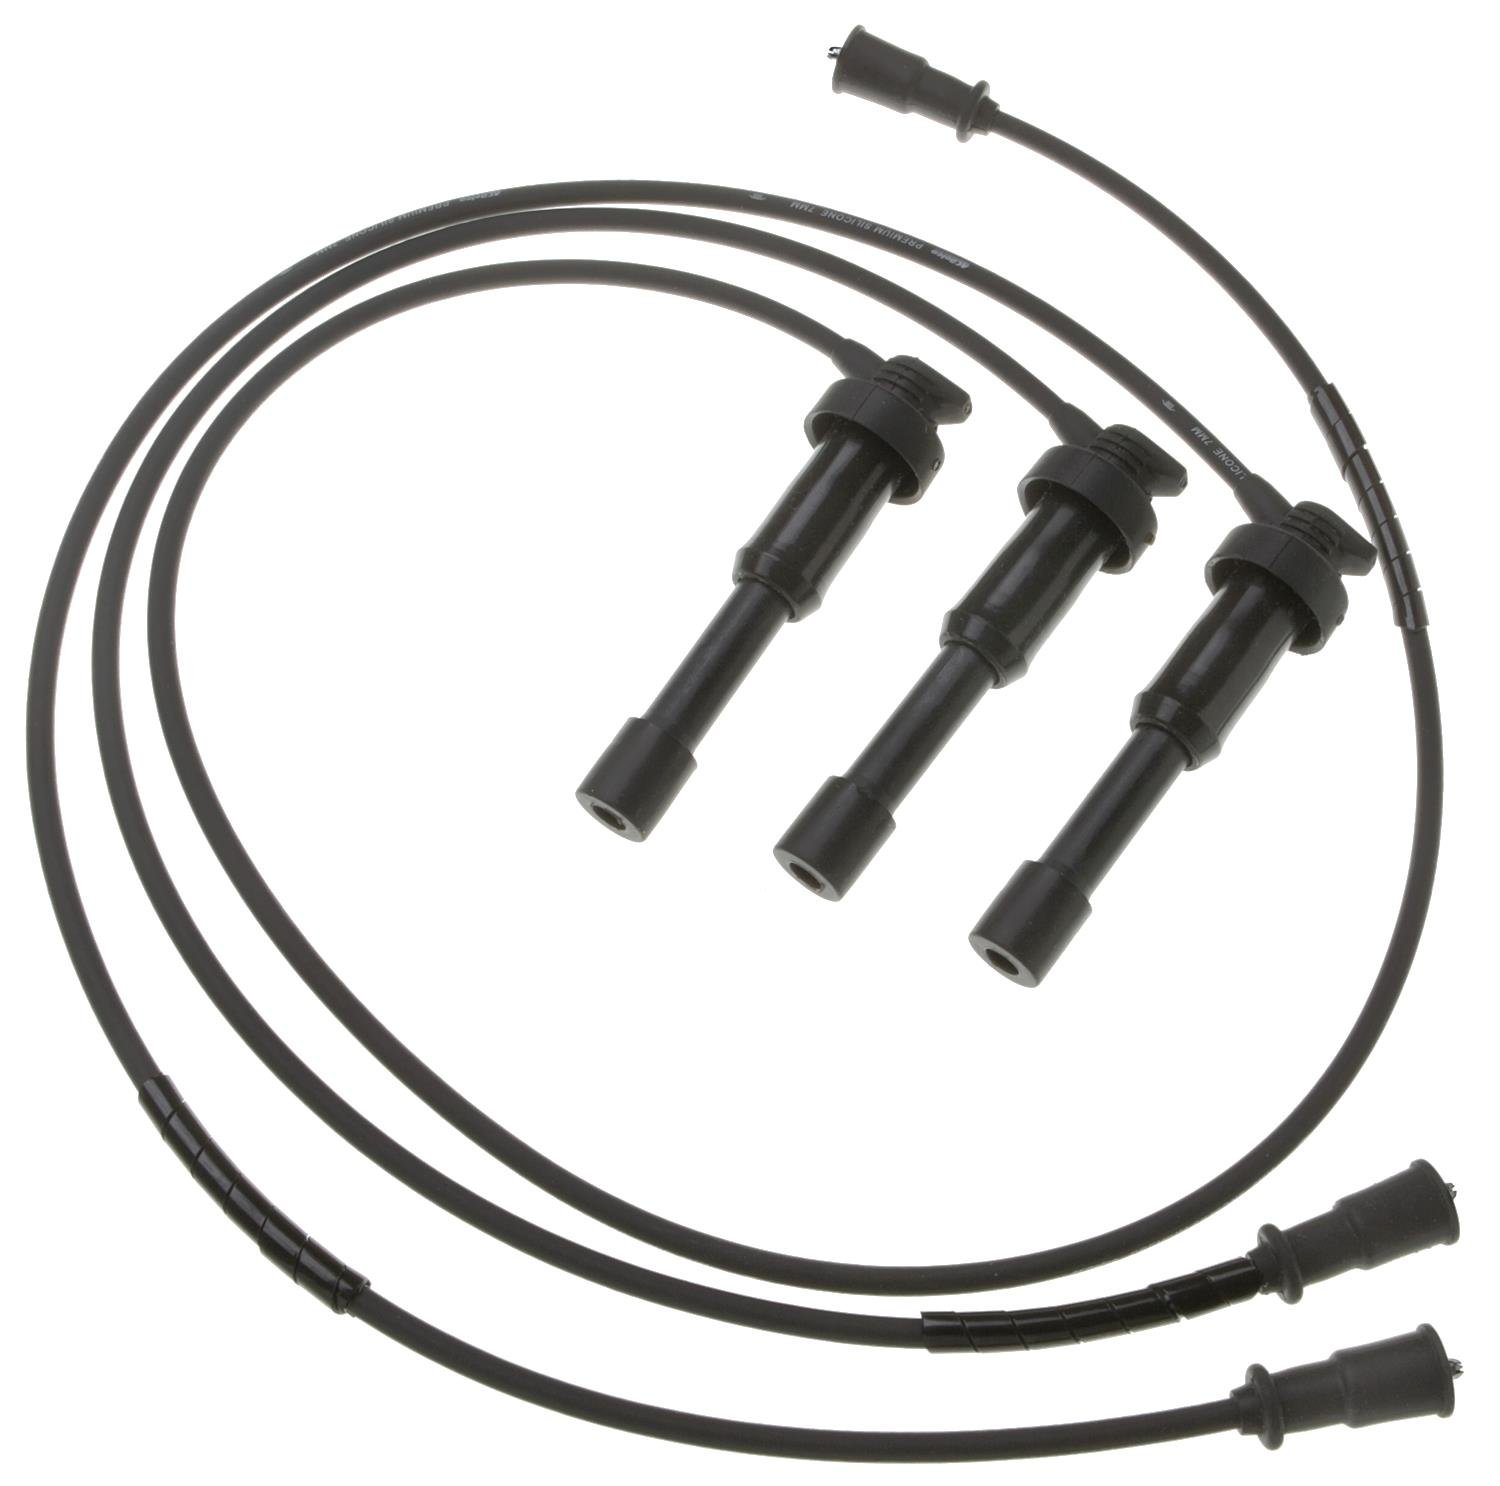 ACDelco 9366R Professional Spark Plug Wire Set 9366R-ACD